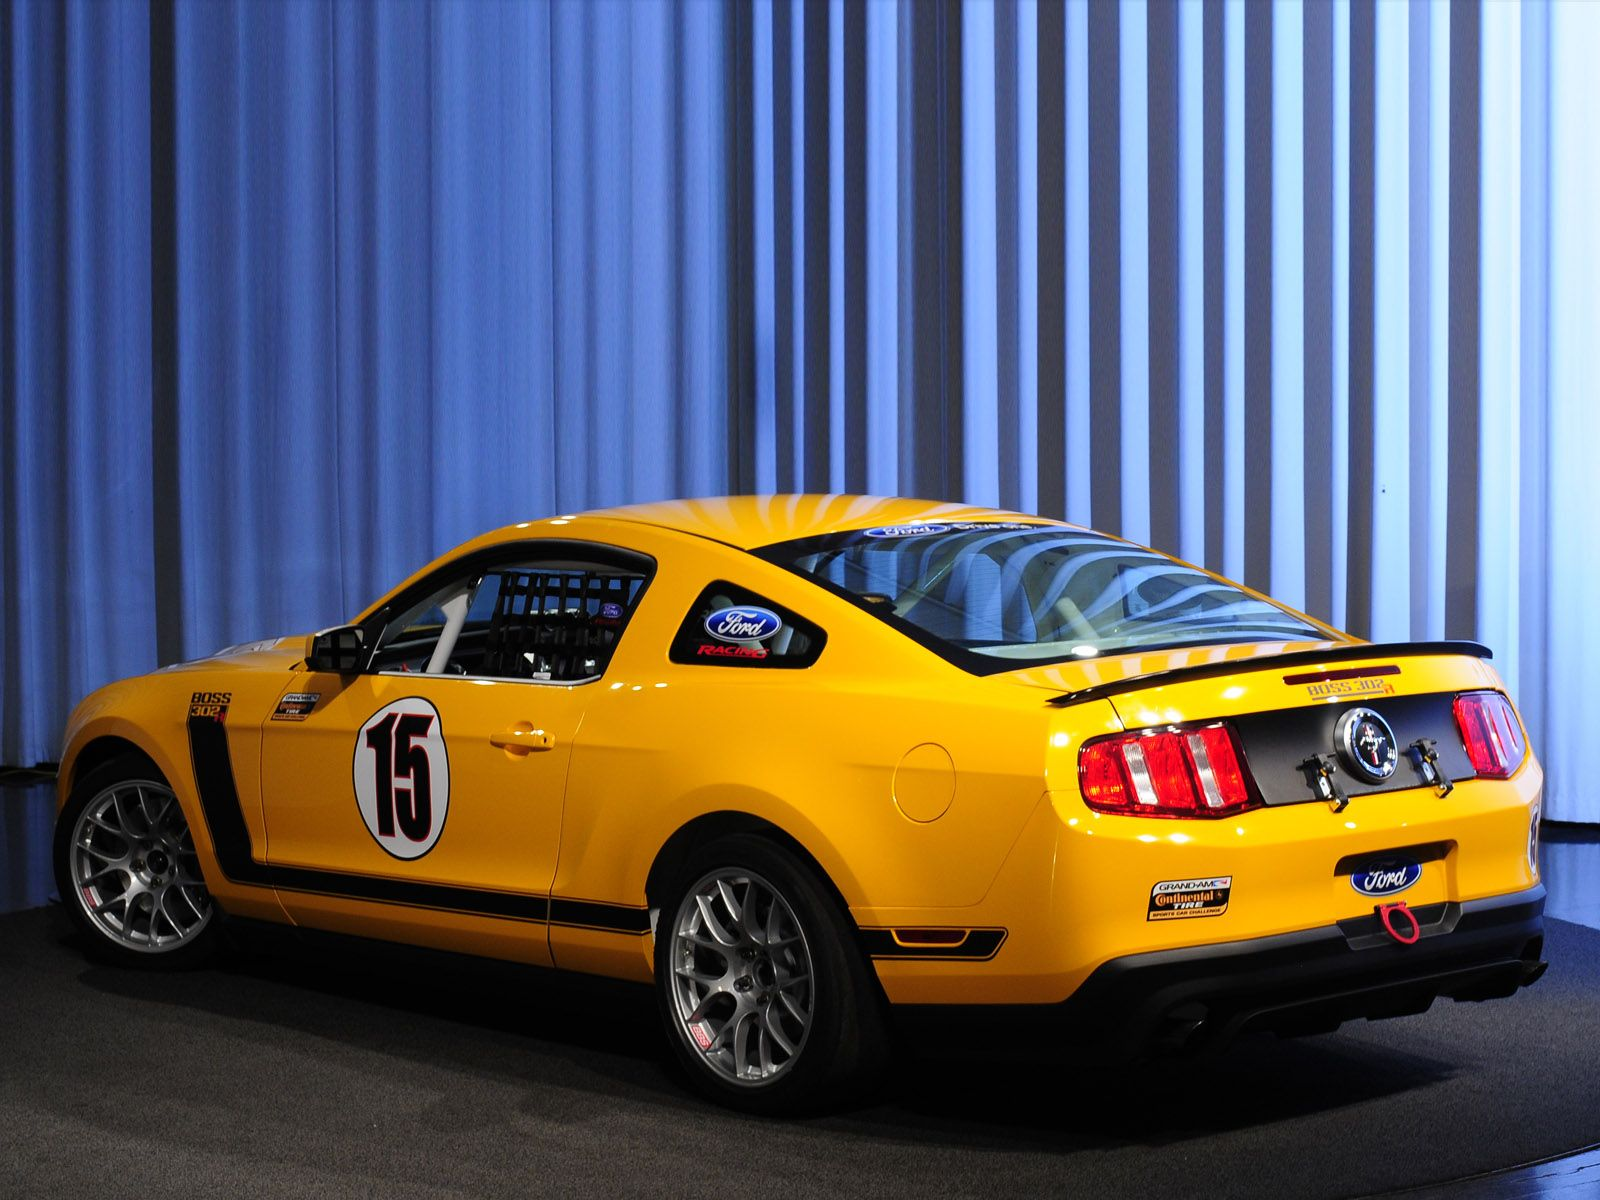 2011 Ford Mustang BOSS 302R Classic Mustangs Pinterest